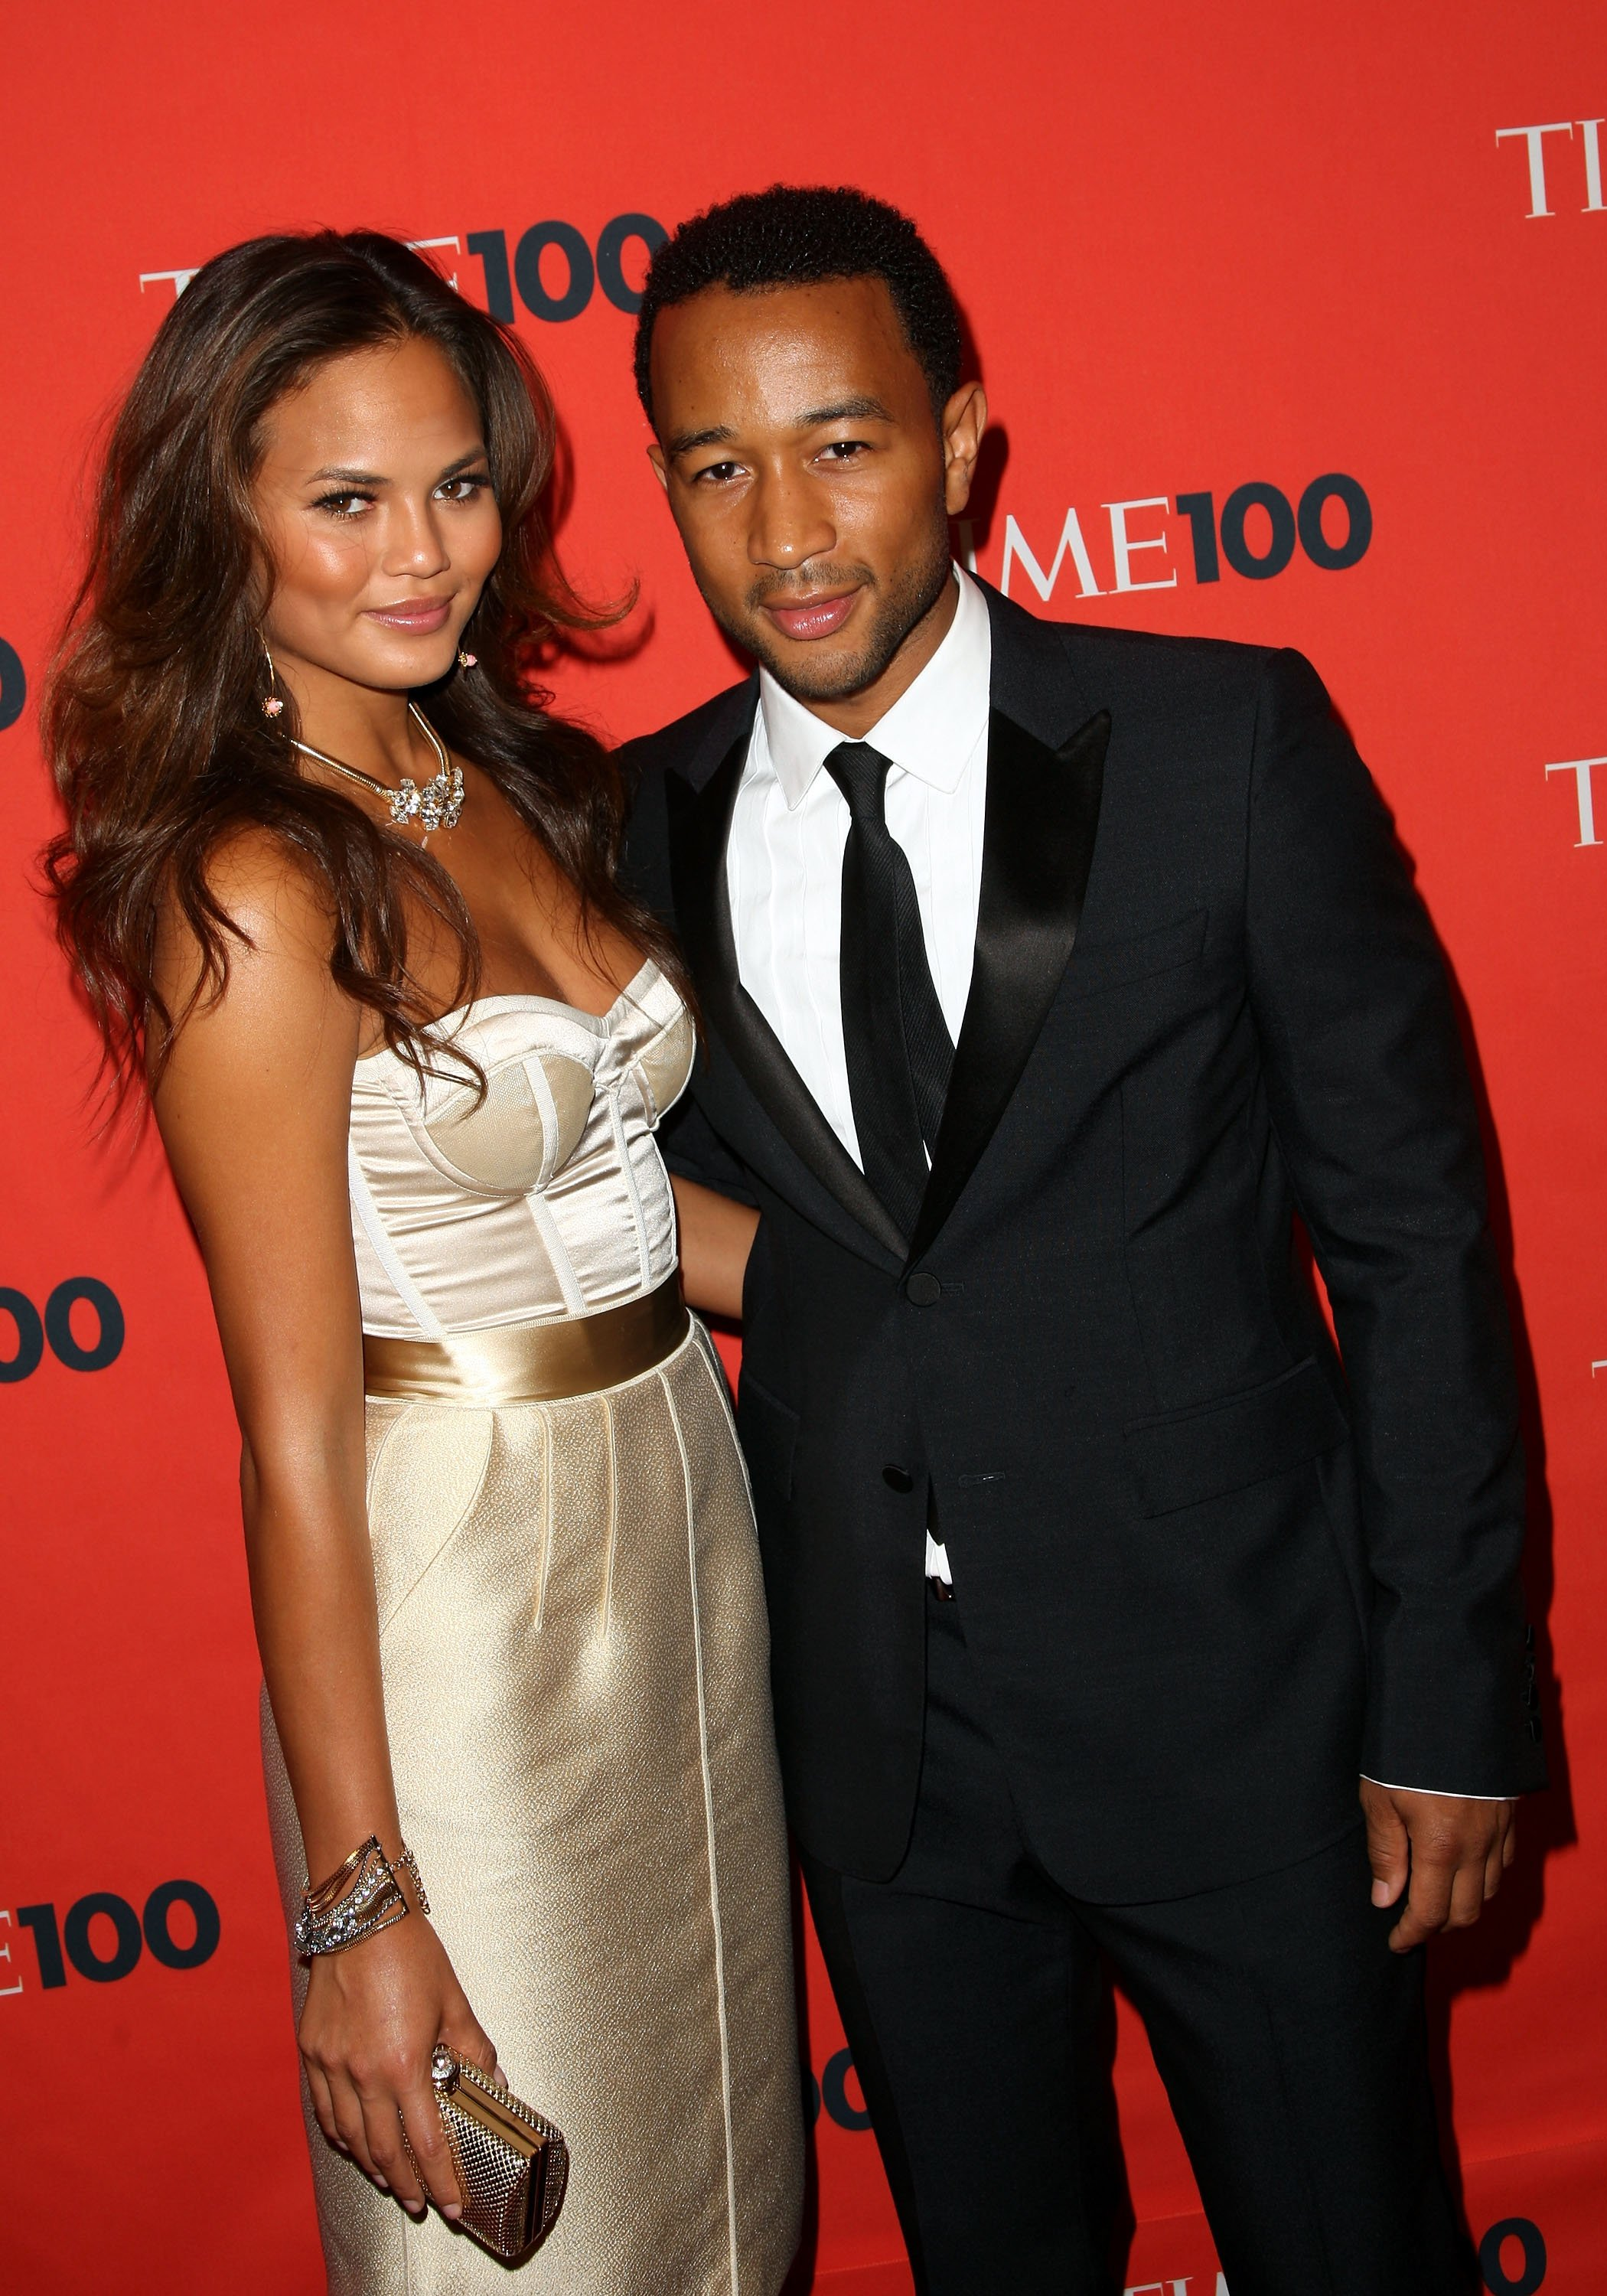 Chrissy Teigen and John Legend at Time's 100 Most Influential People in the World Gala in New York, on May 5, 2009. | Photo: Getty Images.